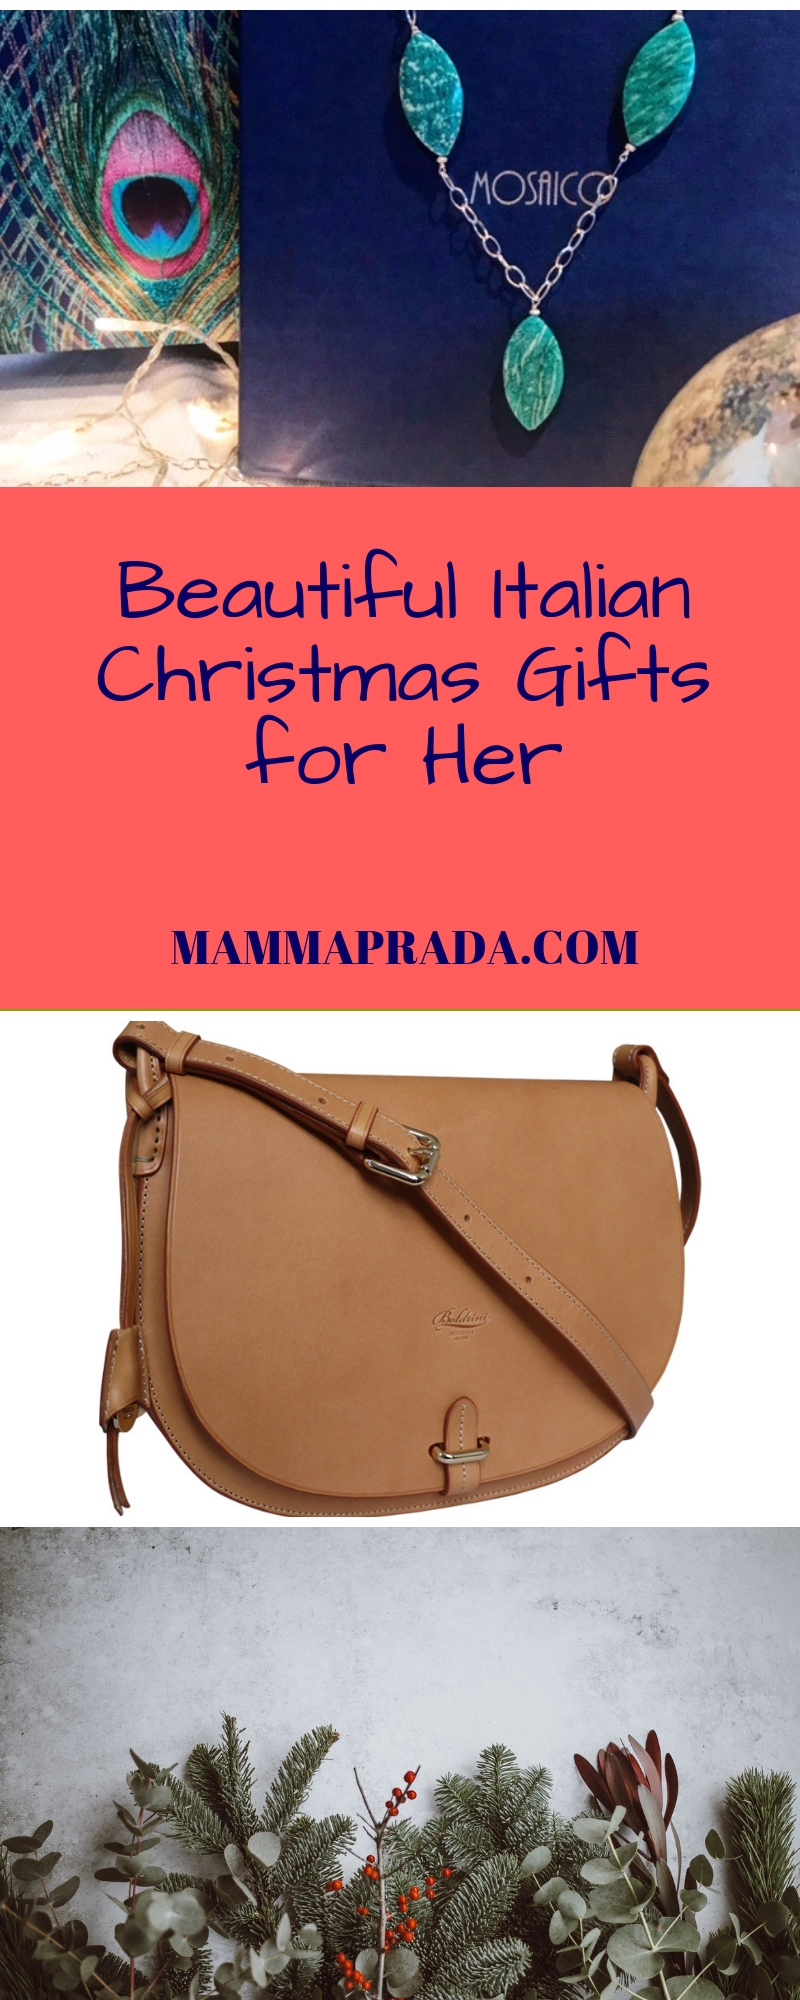 xmas gifts for her 2.jpg